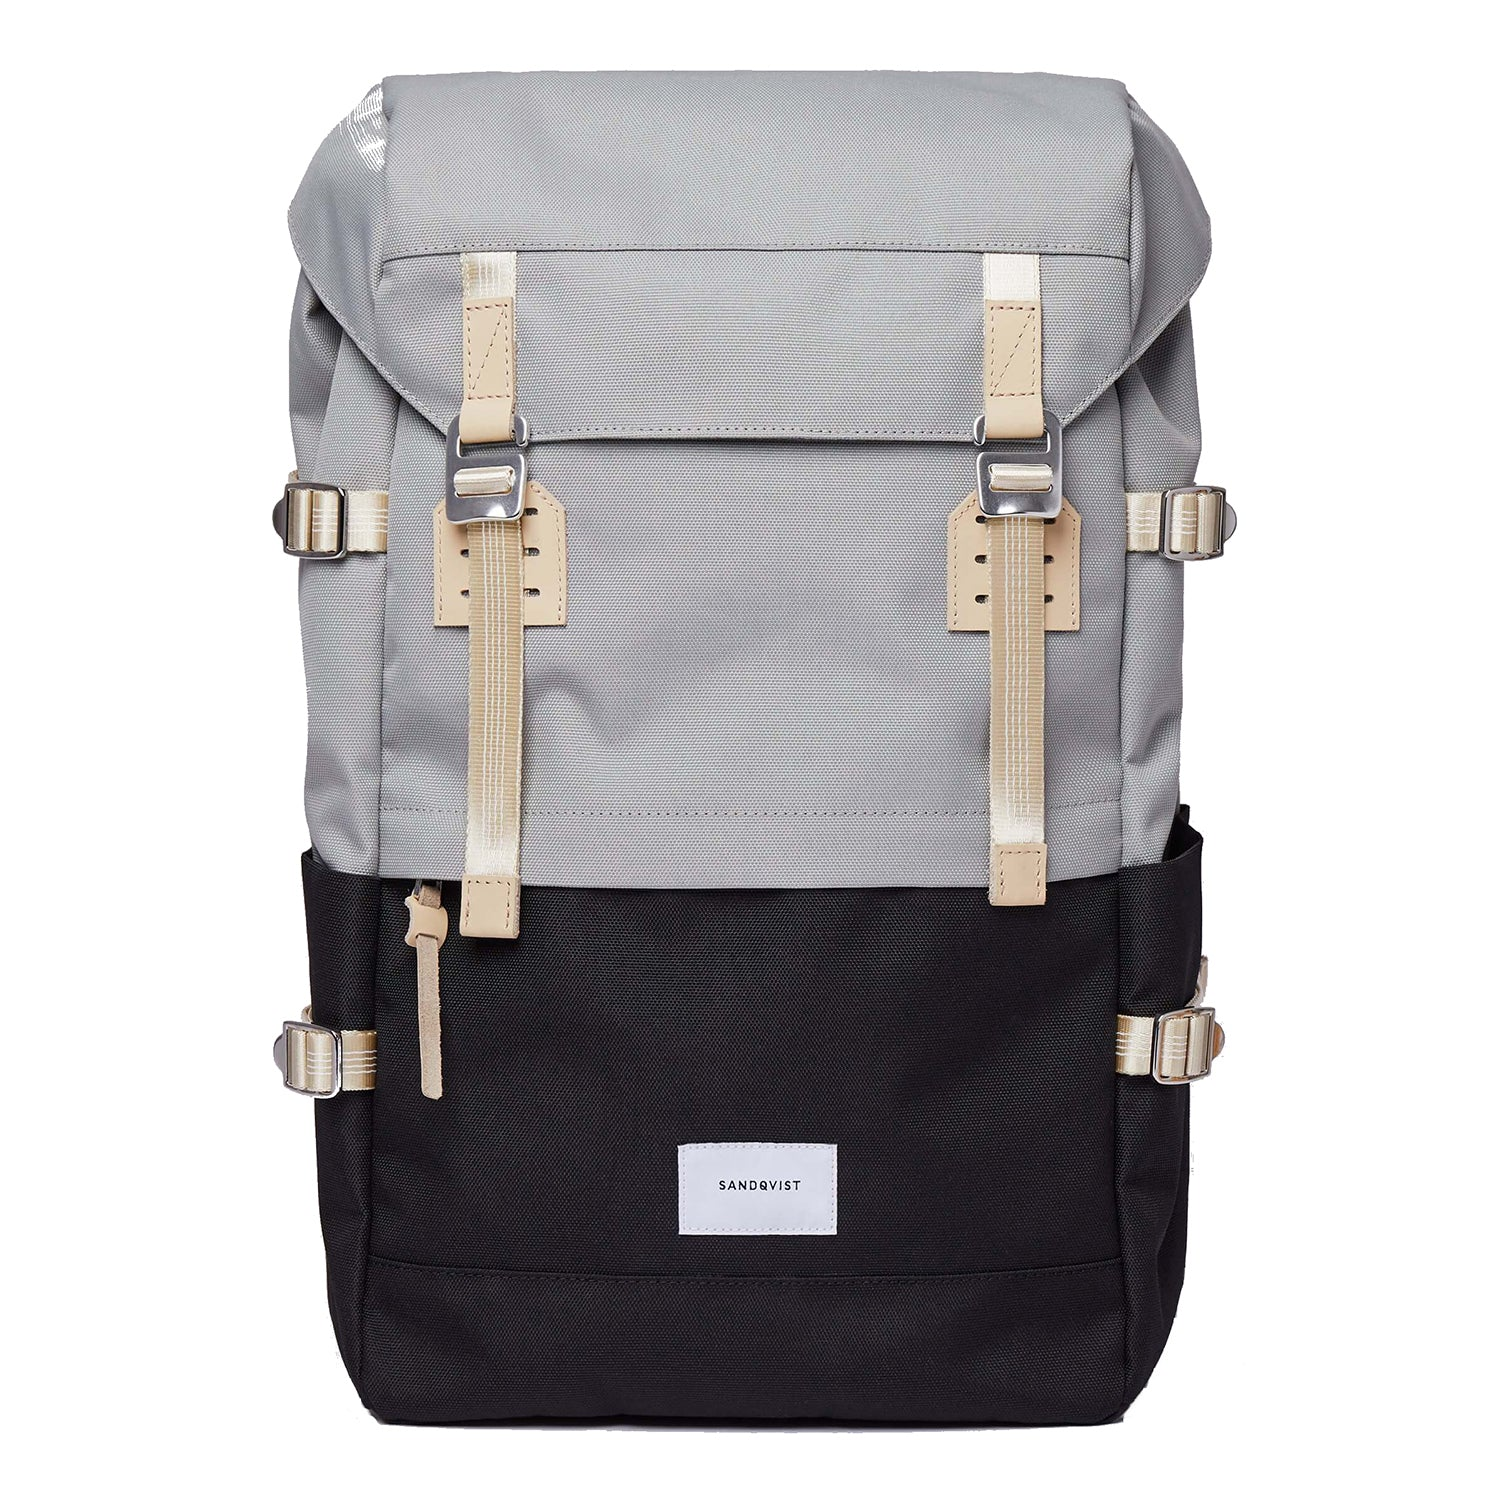 Sandqvist Harald Backpack in Multi Grey/Black